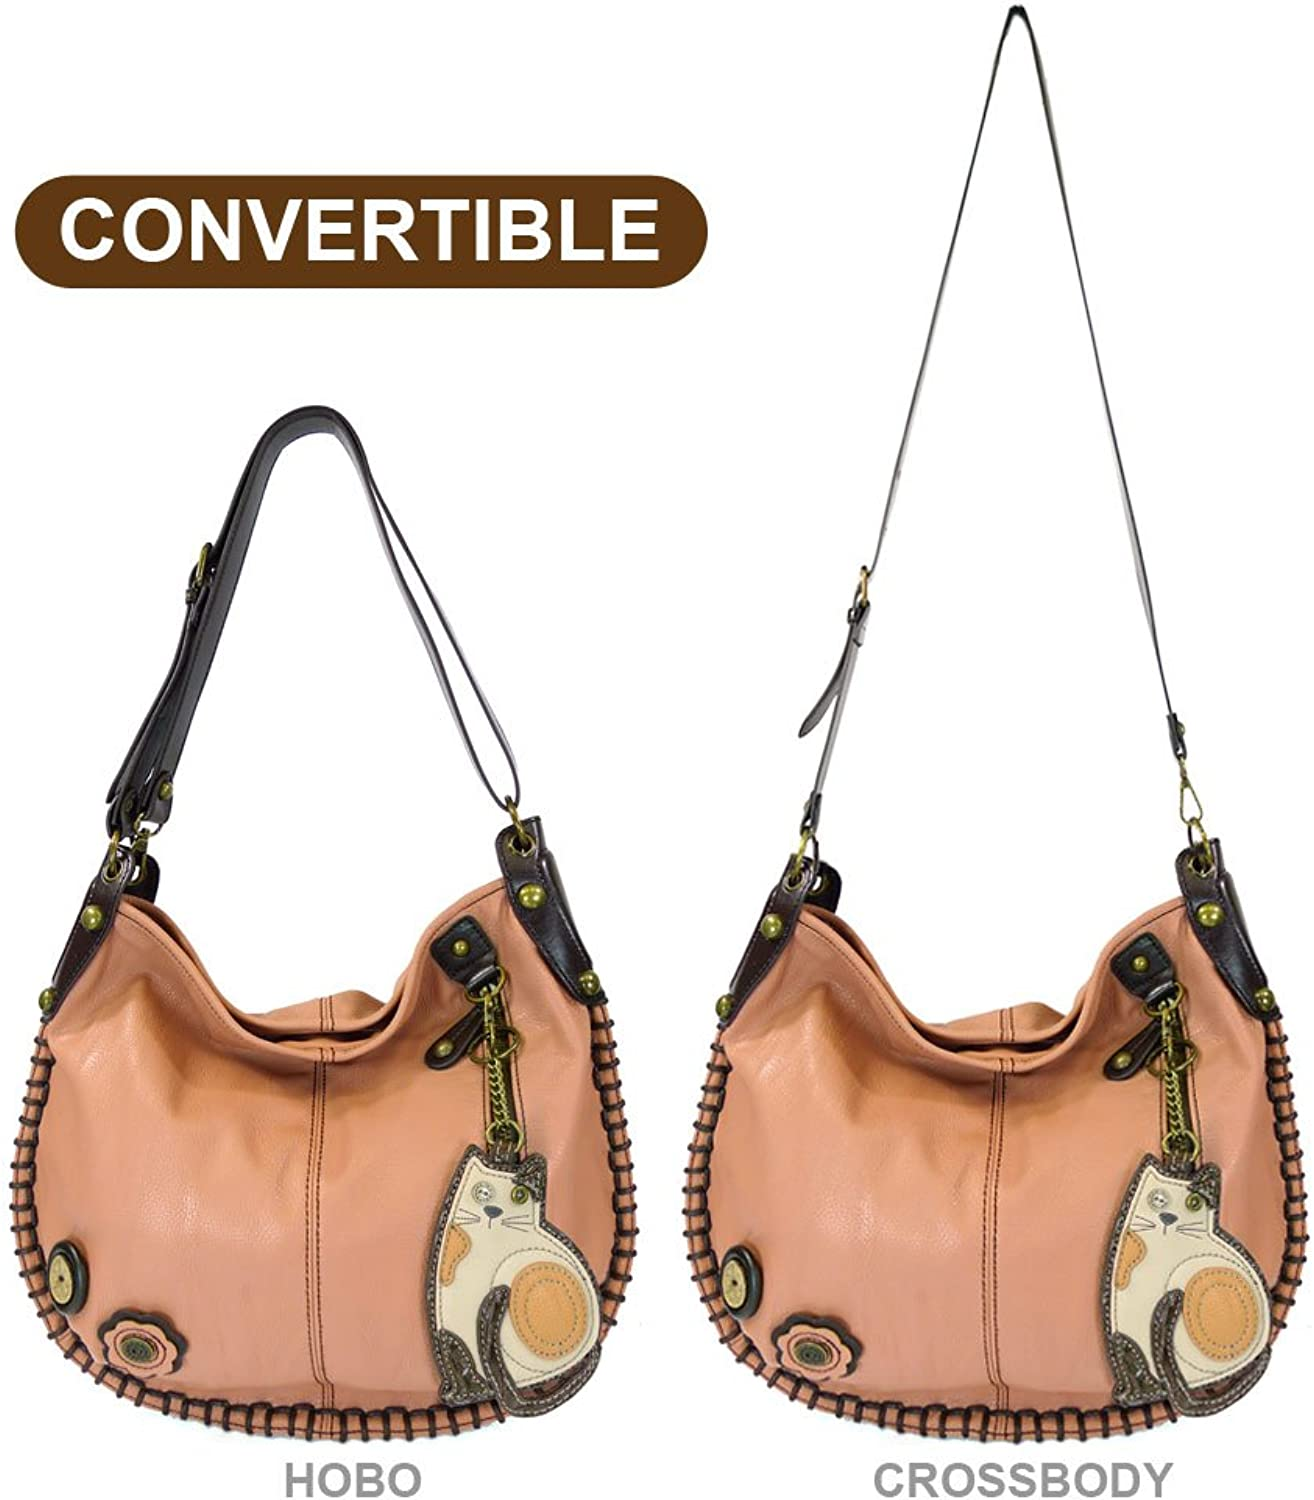 Chala Hobo Crossbody Large Tote Bag LAZZY CAT Vegan leather PINK Congreenible